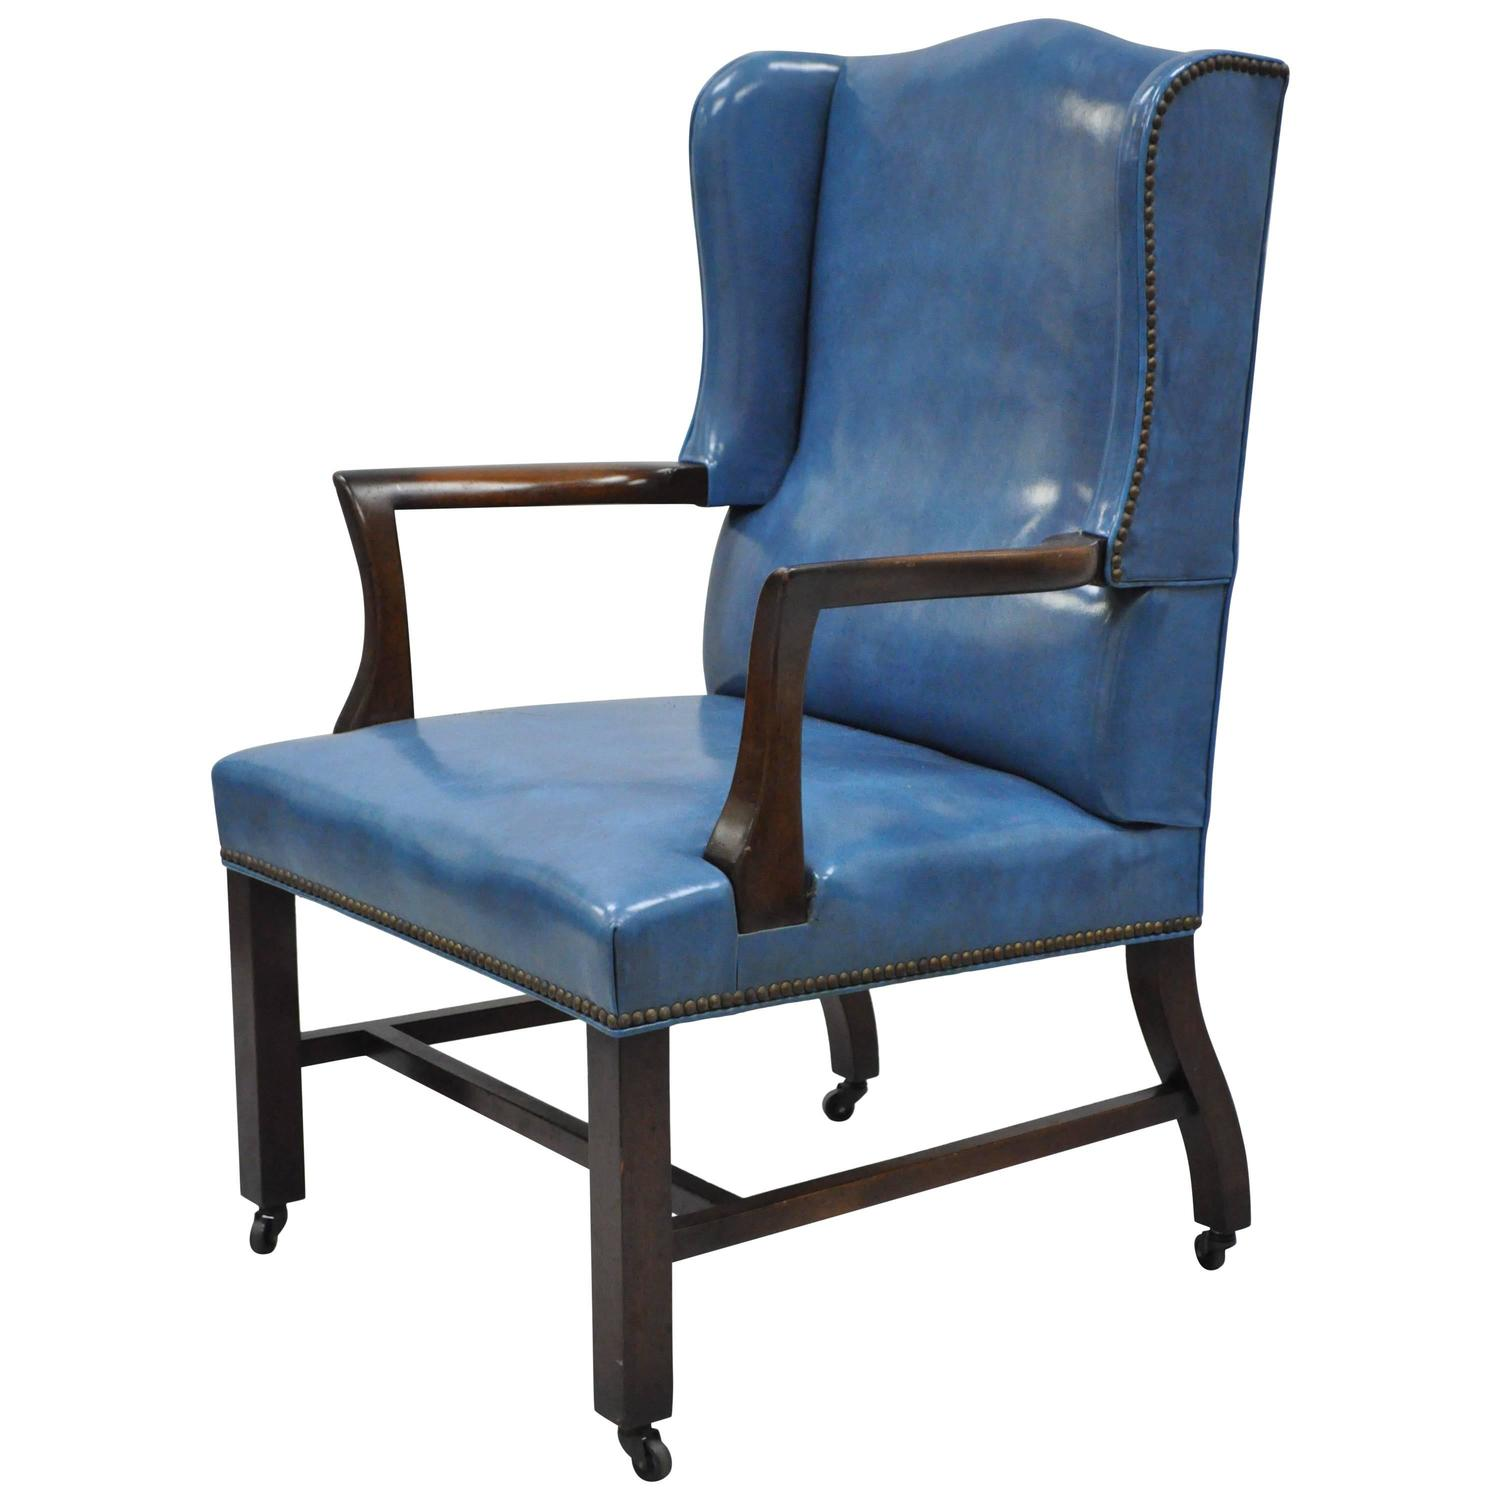 Blue Leather Dining Chairs Mid 20th Century Blue Leather Office Desk Chair On Casters